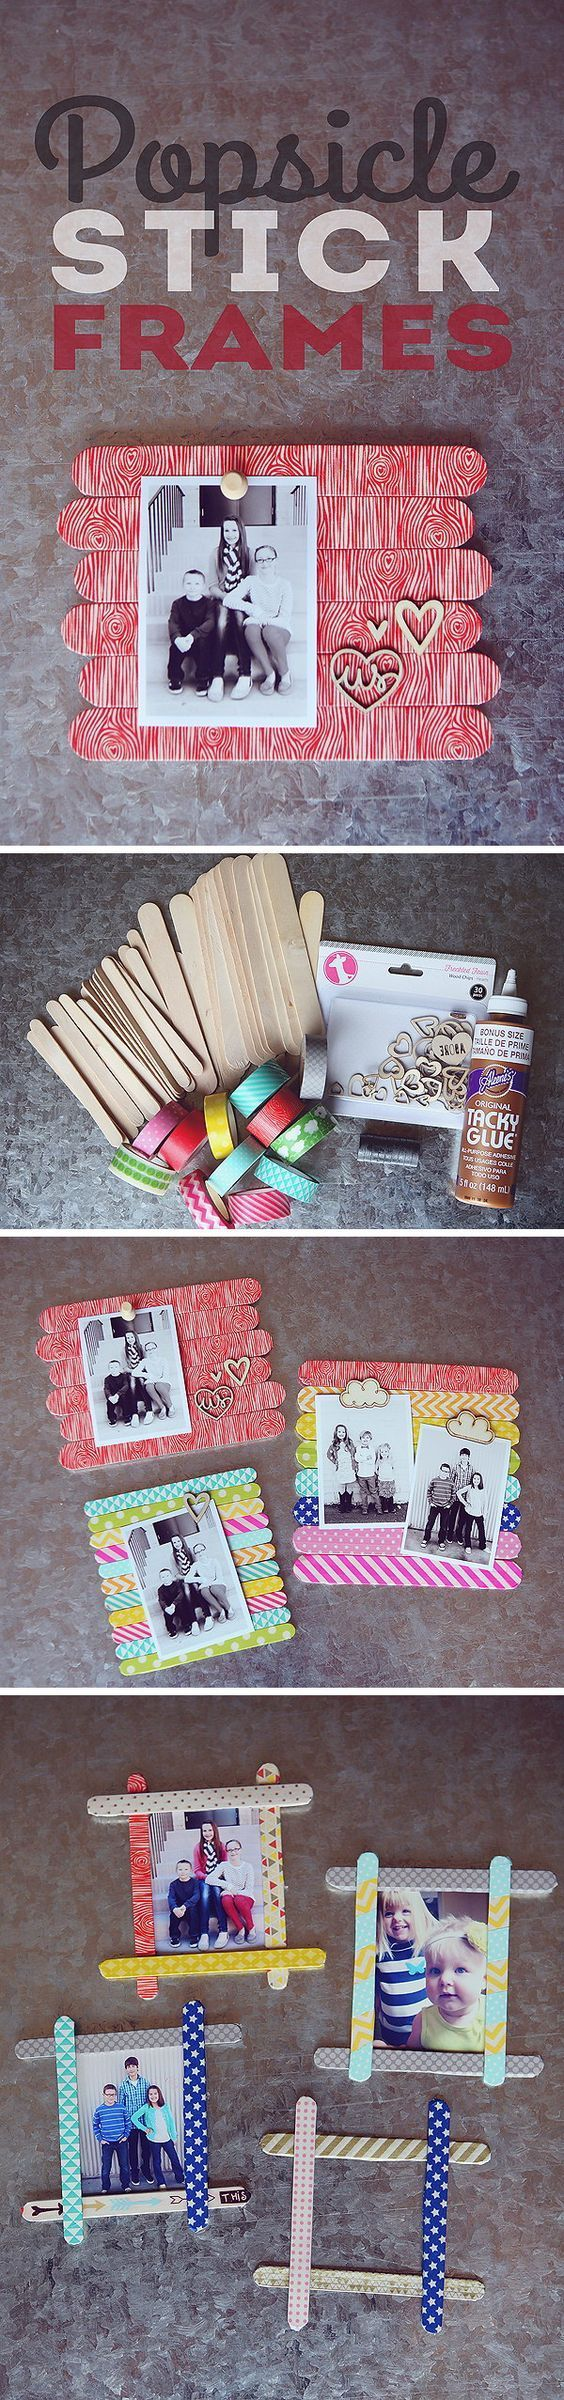 Easy Diy Gifts For Mom From Kids Clever Diy Ideas Crafts Craft Stick Crafts Diy Gifts For Mom